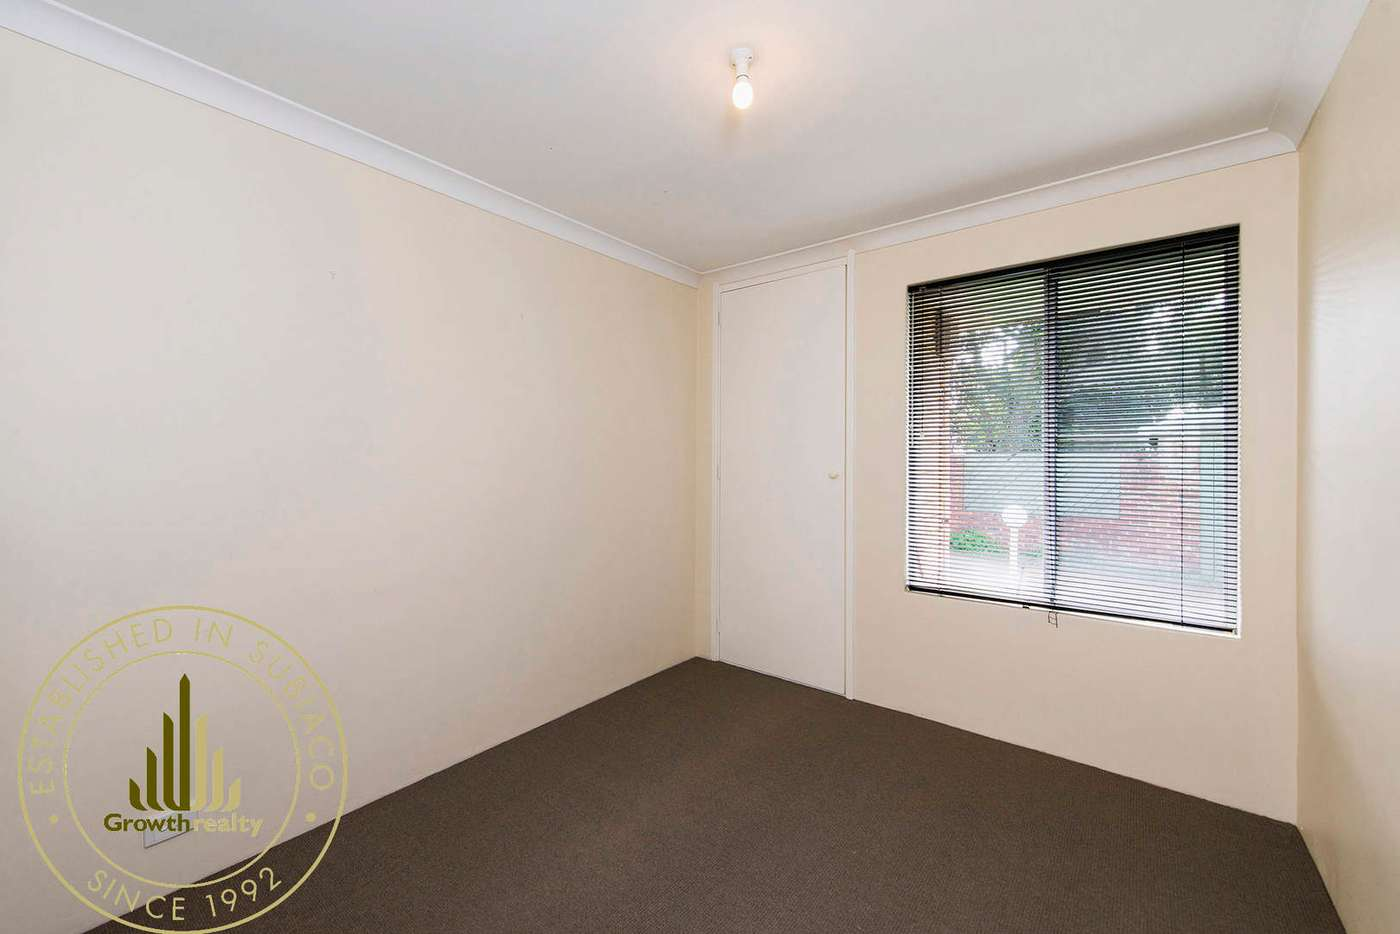 Sixth view of Homely villa listing, 6/119 Kimberley Street, West Leederville WA 6007